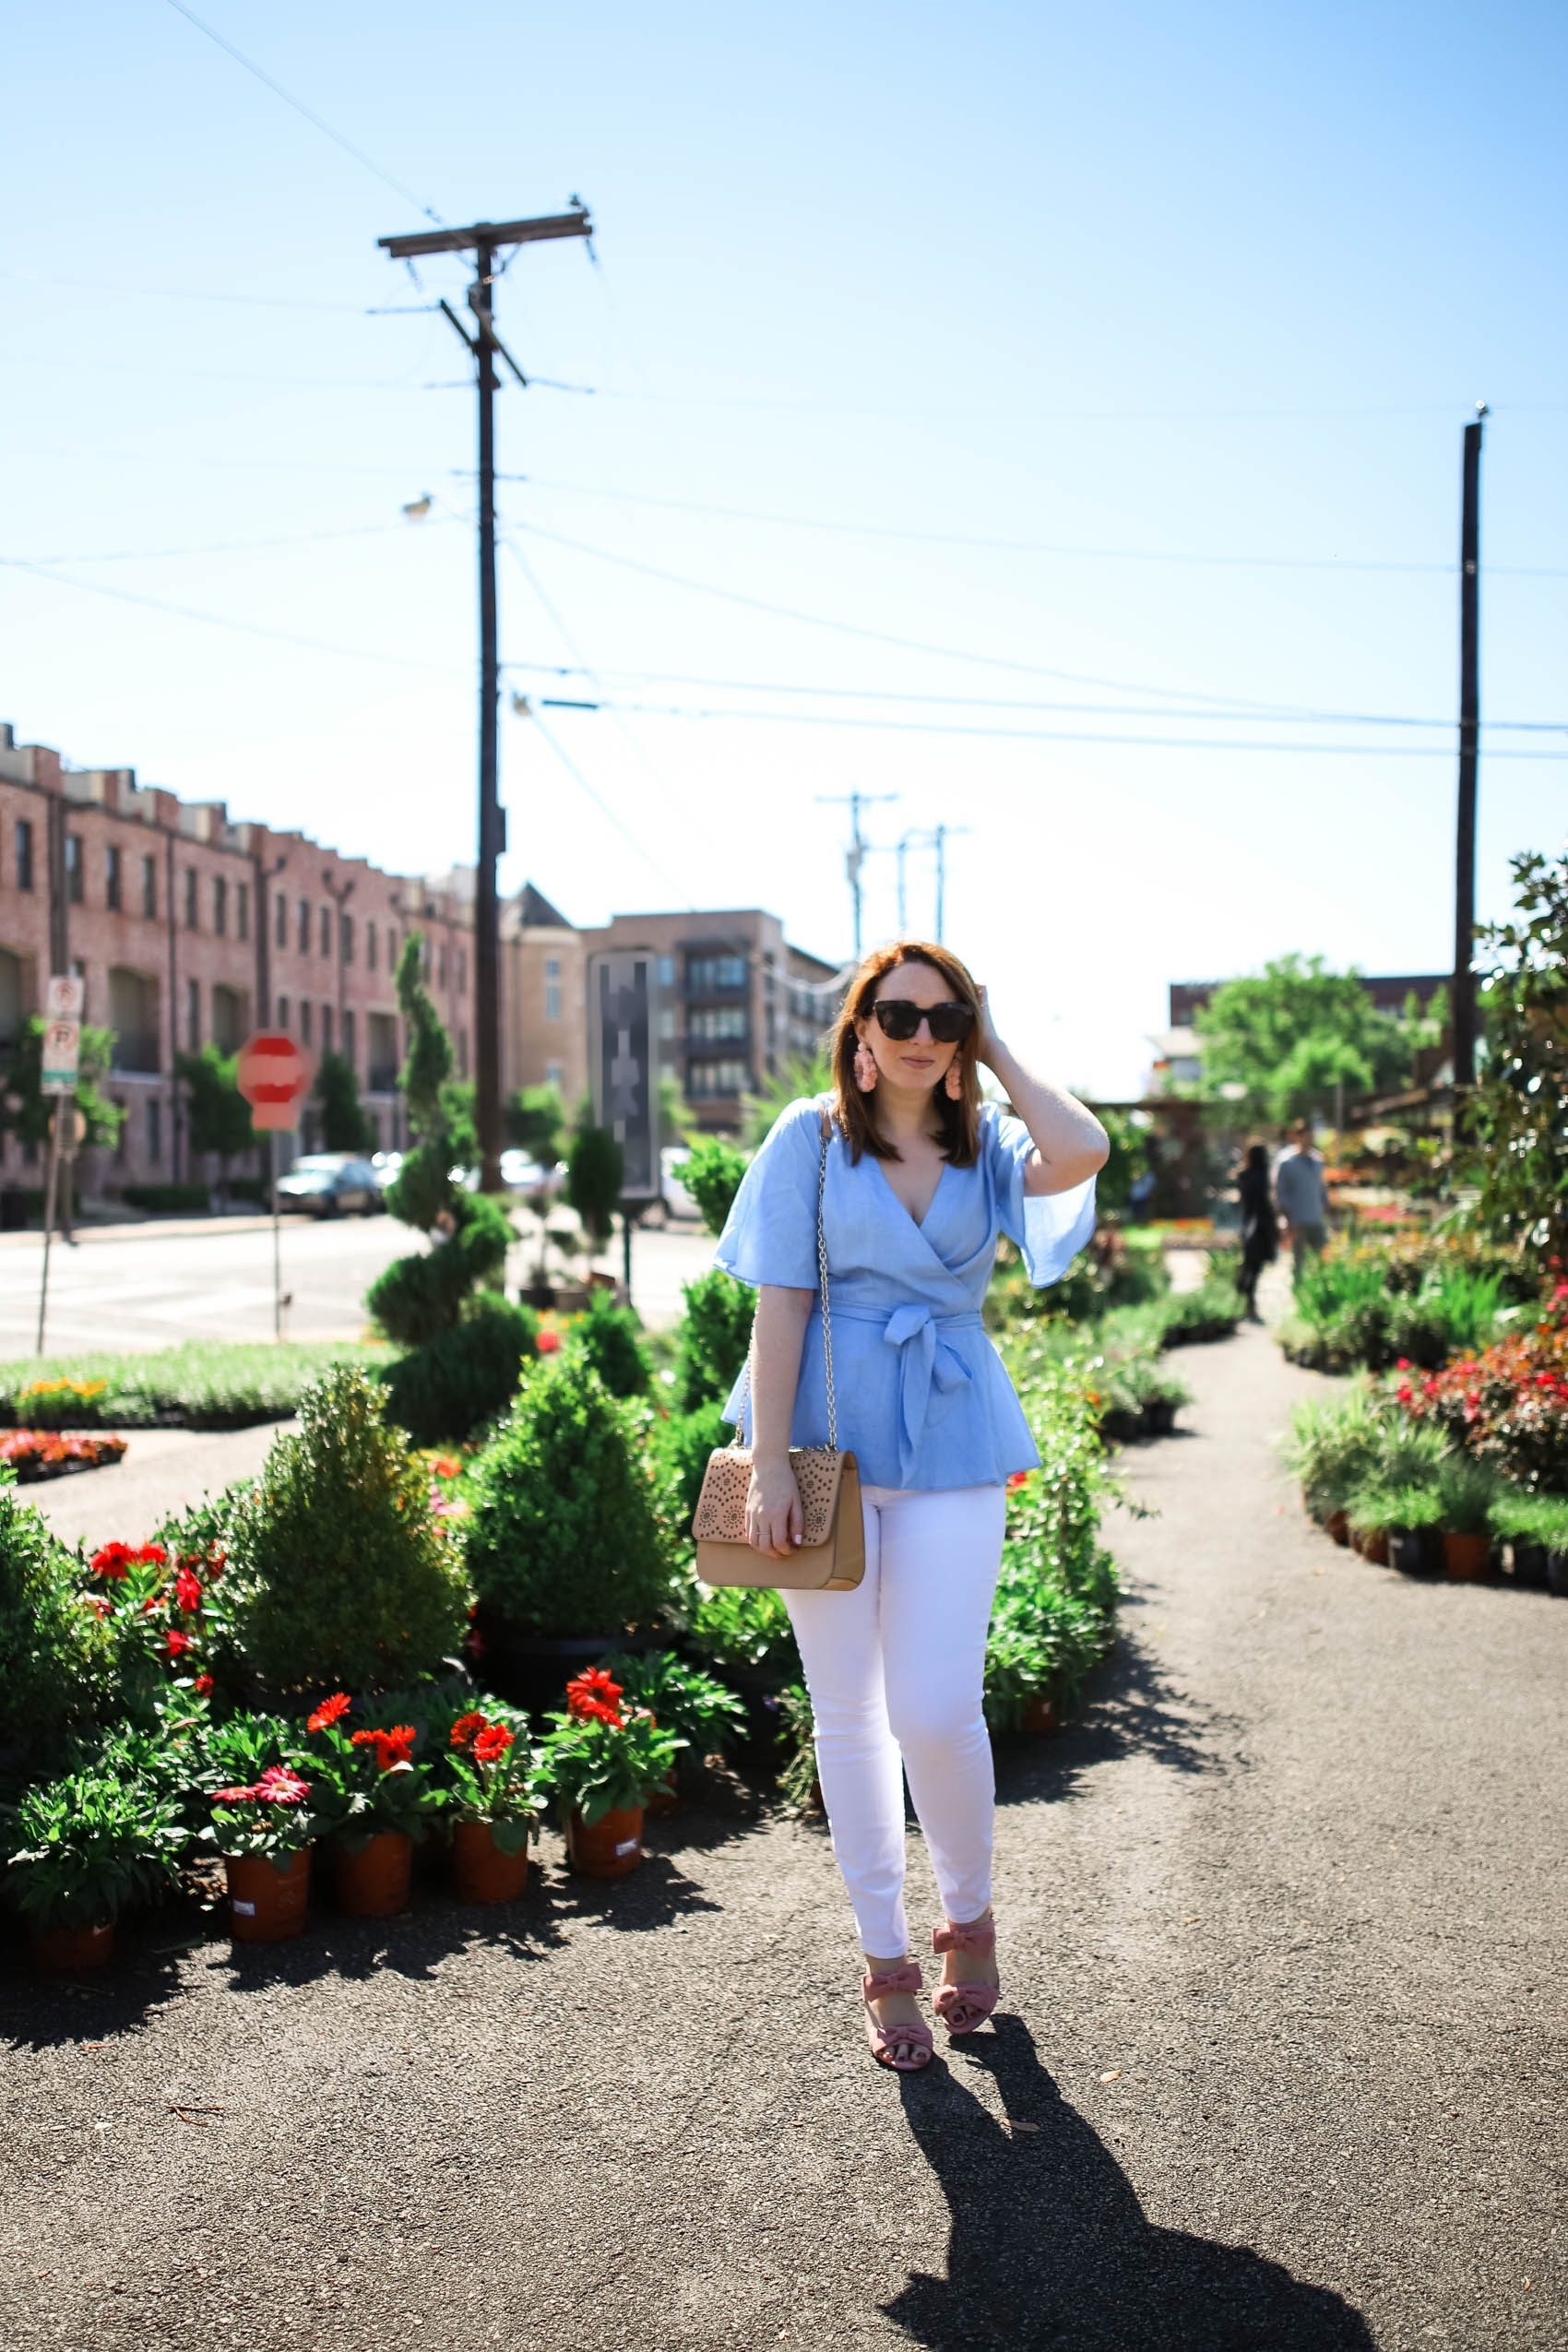 How to Wear White Jeans this Summer | Style White Denim Outfit via Glitter & Spice #outfit #style #denim